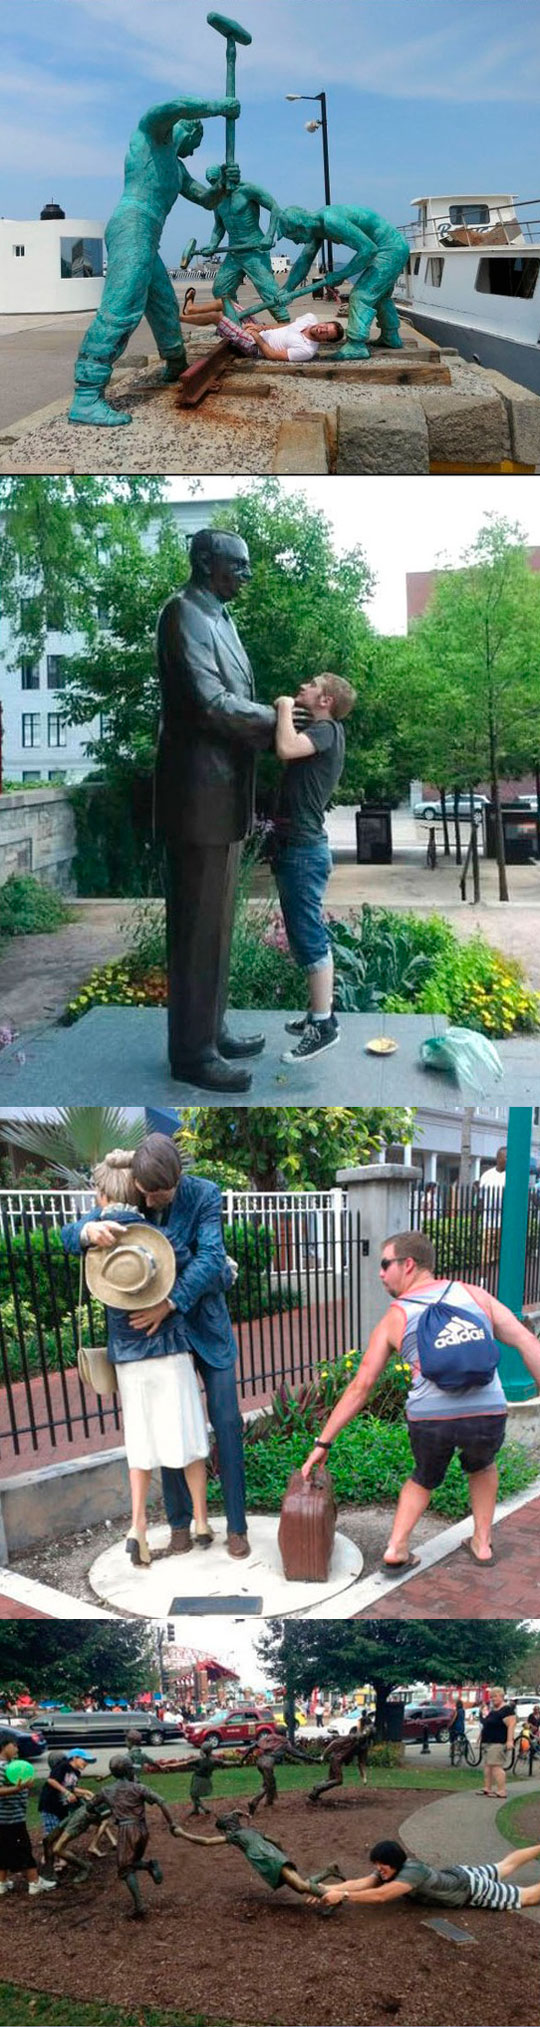 funny-guys-statue-posing-interacting